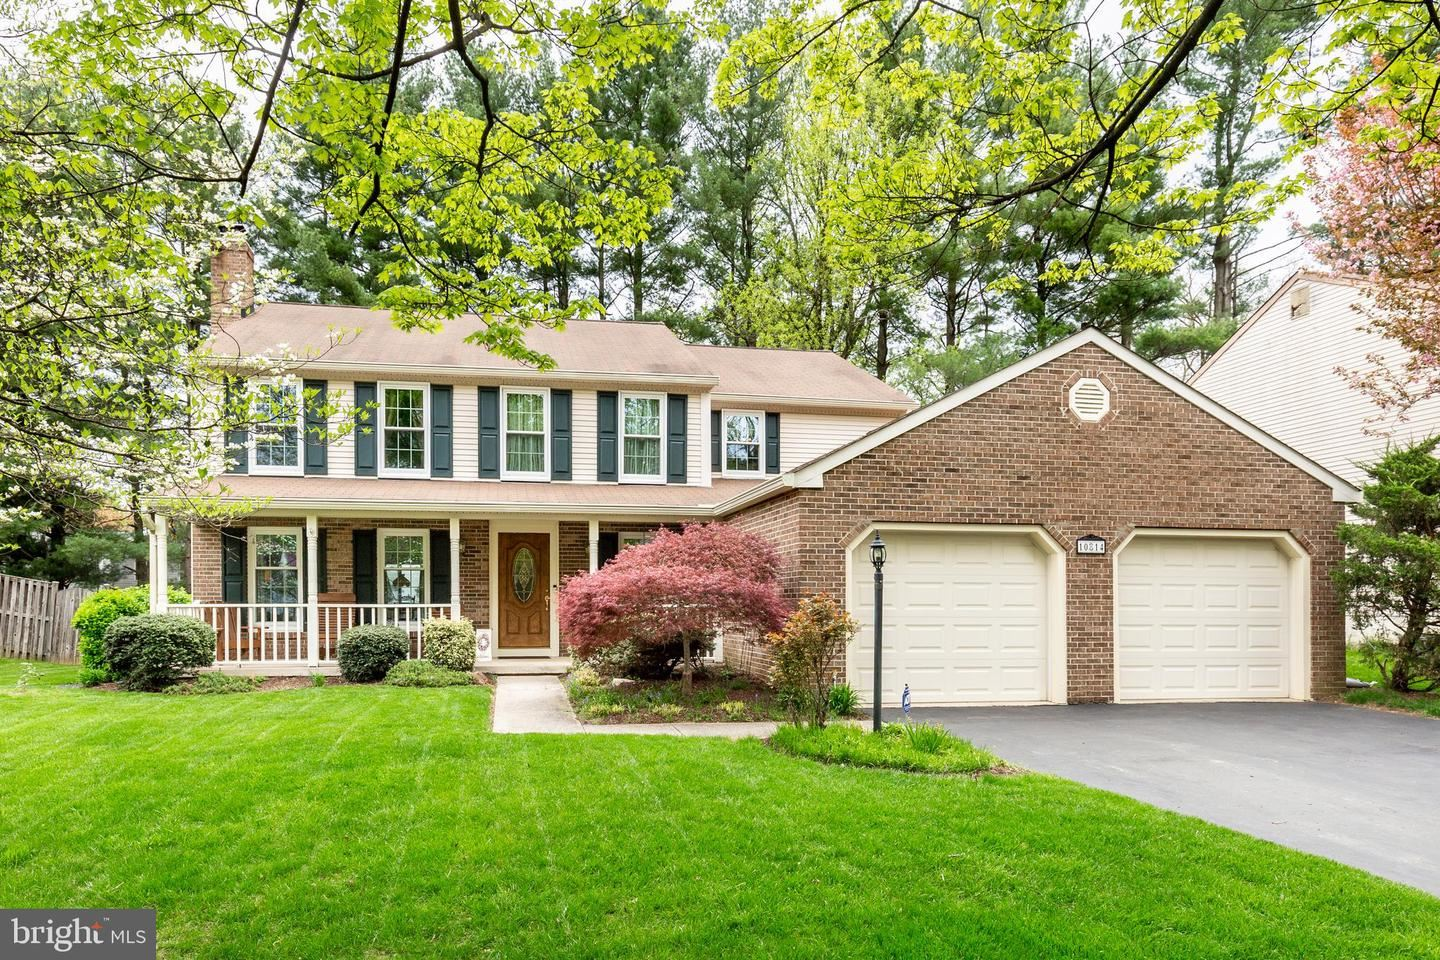 10814 GREEN VIEW WAY, Columbia, MD 21044 - MLS#: MDHW293884